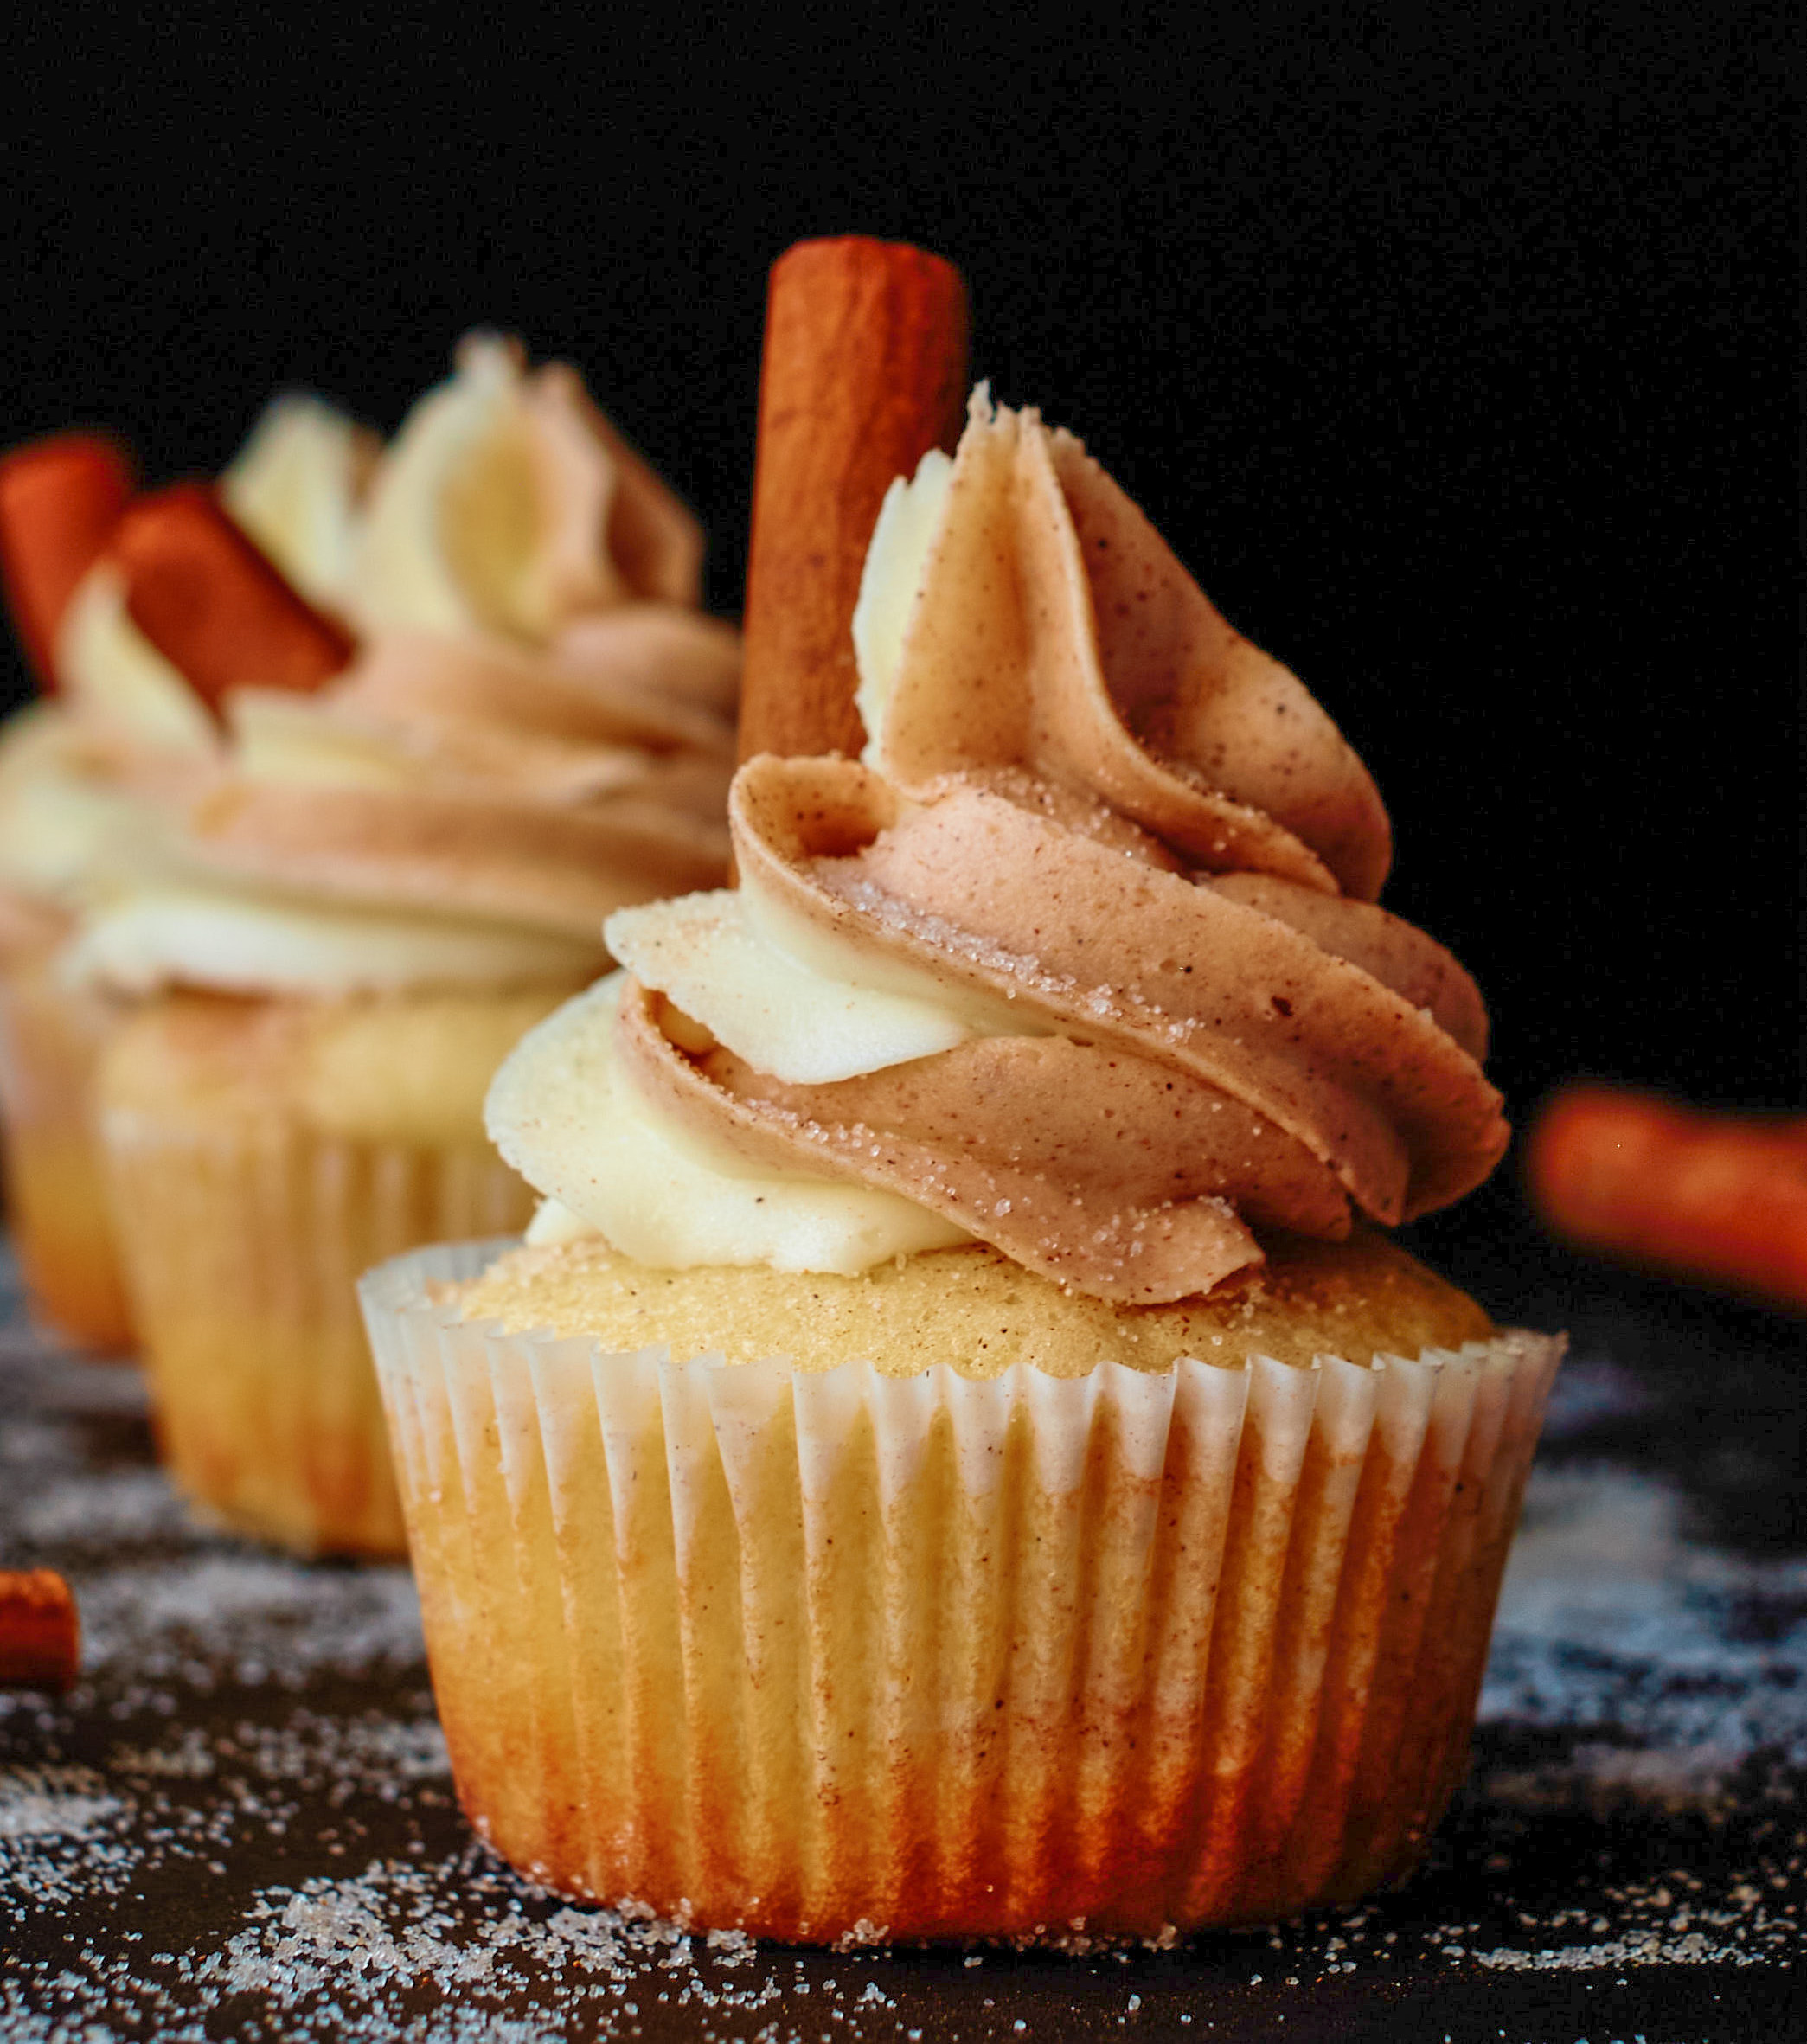 frosted cupcake with cinnamon stick